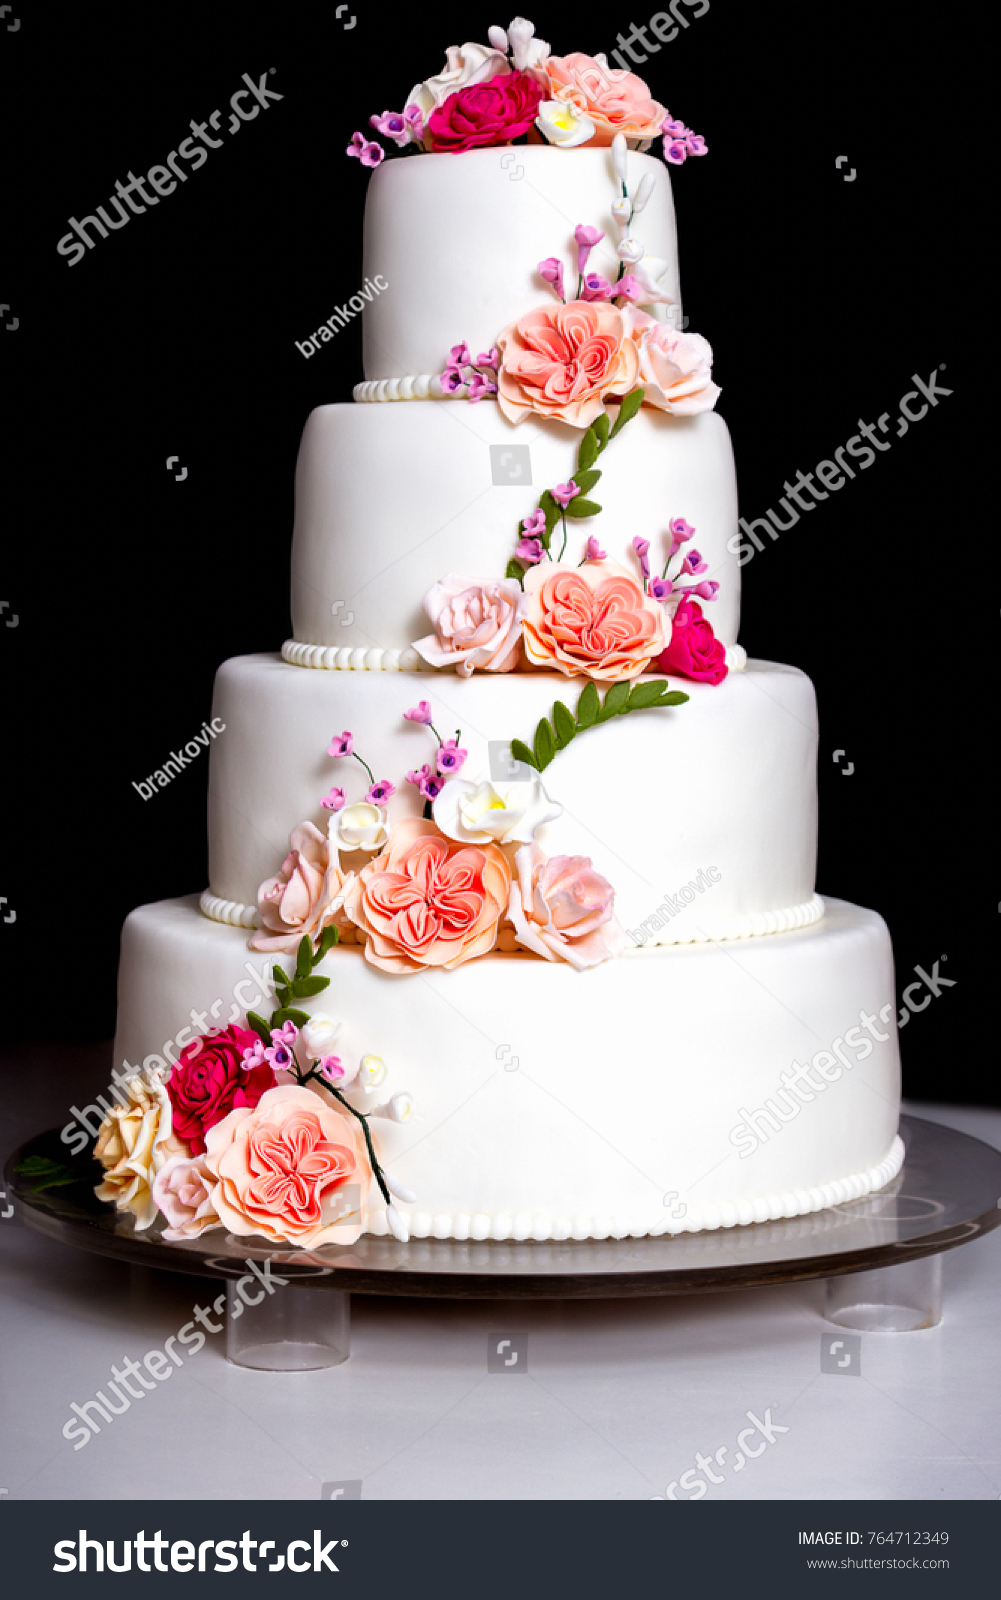 White Wedding Cake With Flowers And Leaves On Black Background